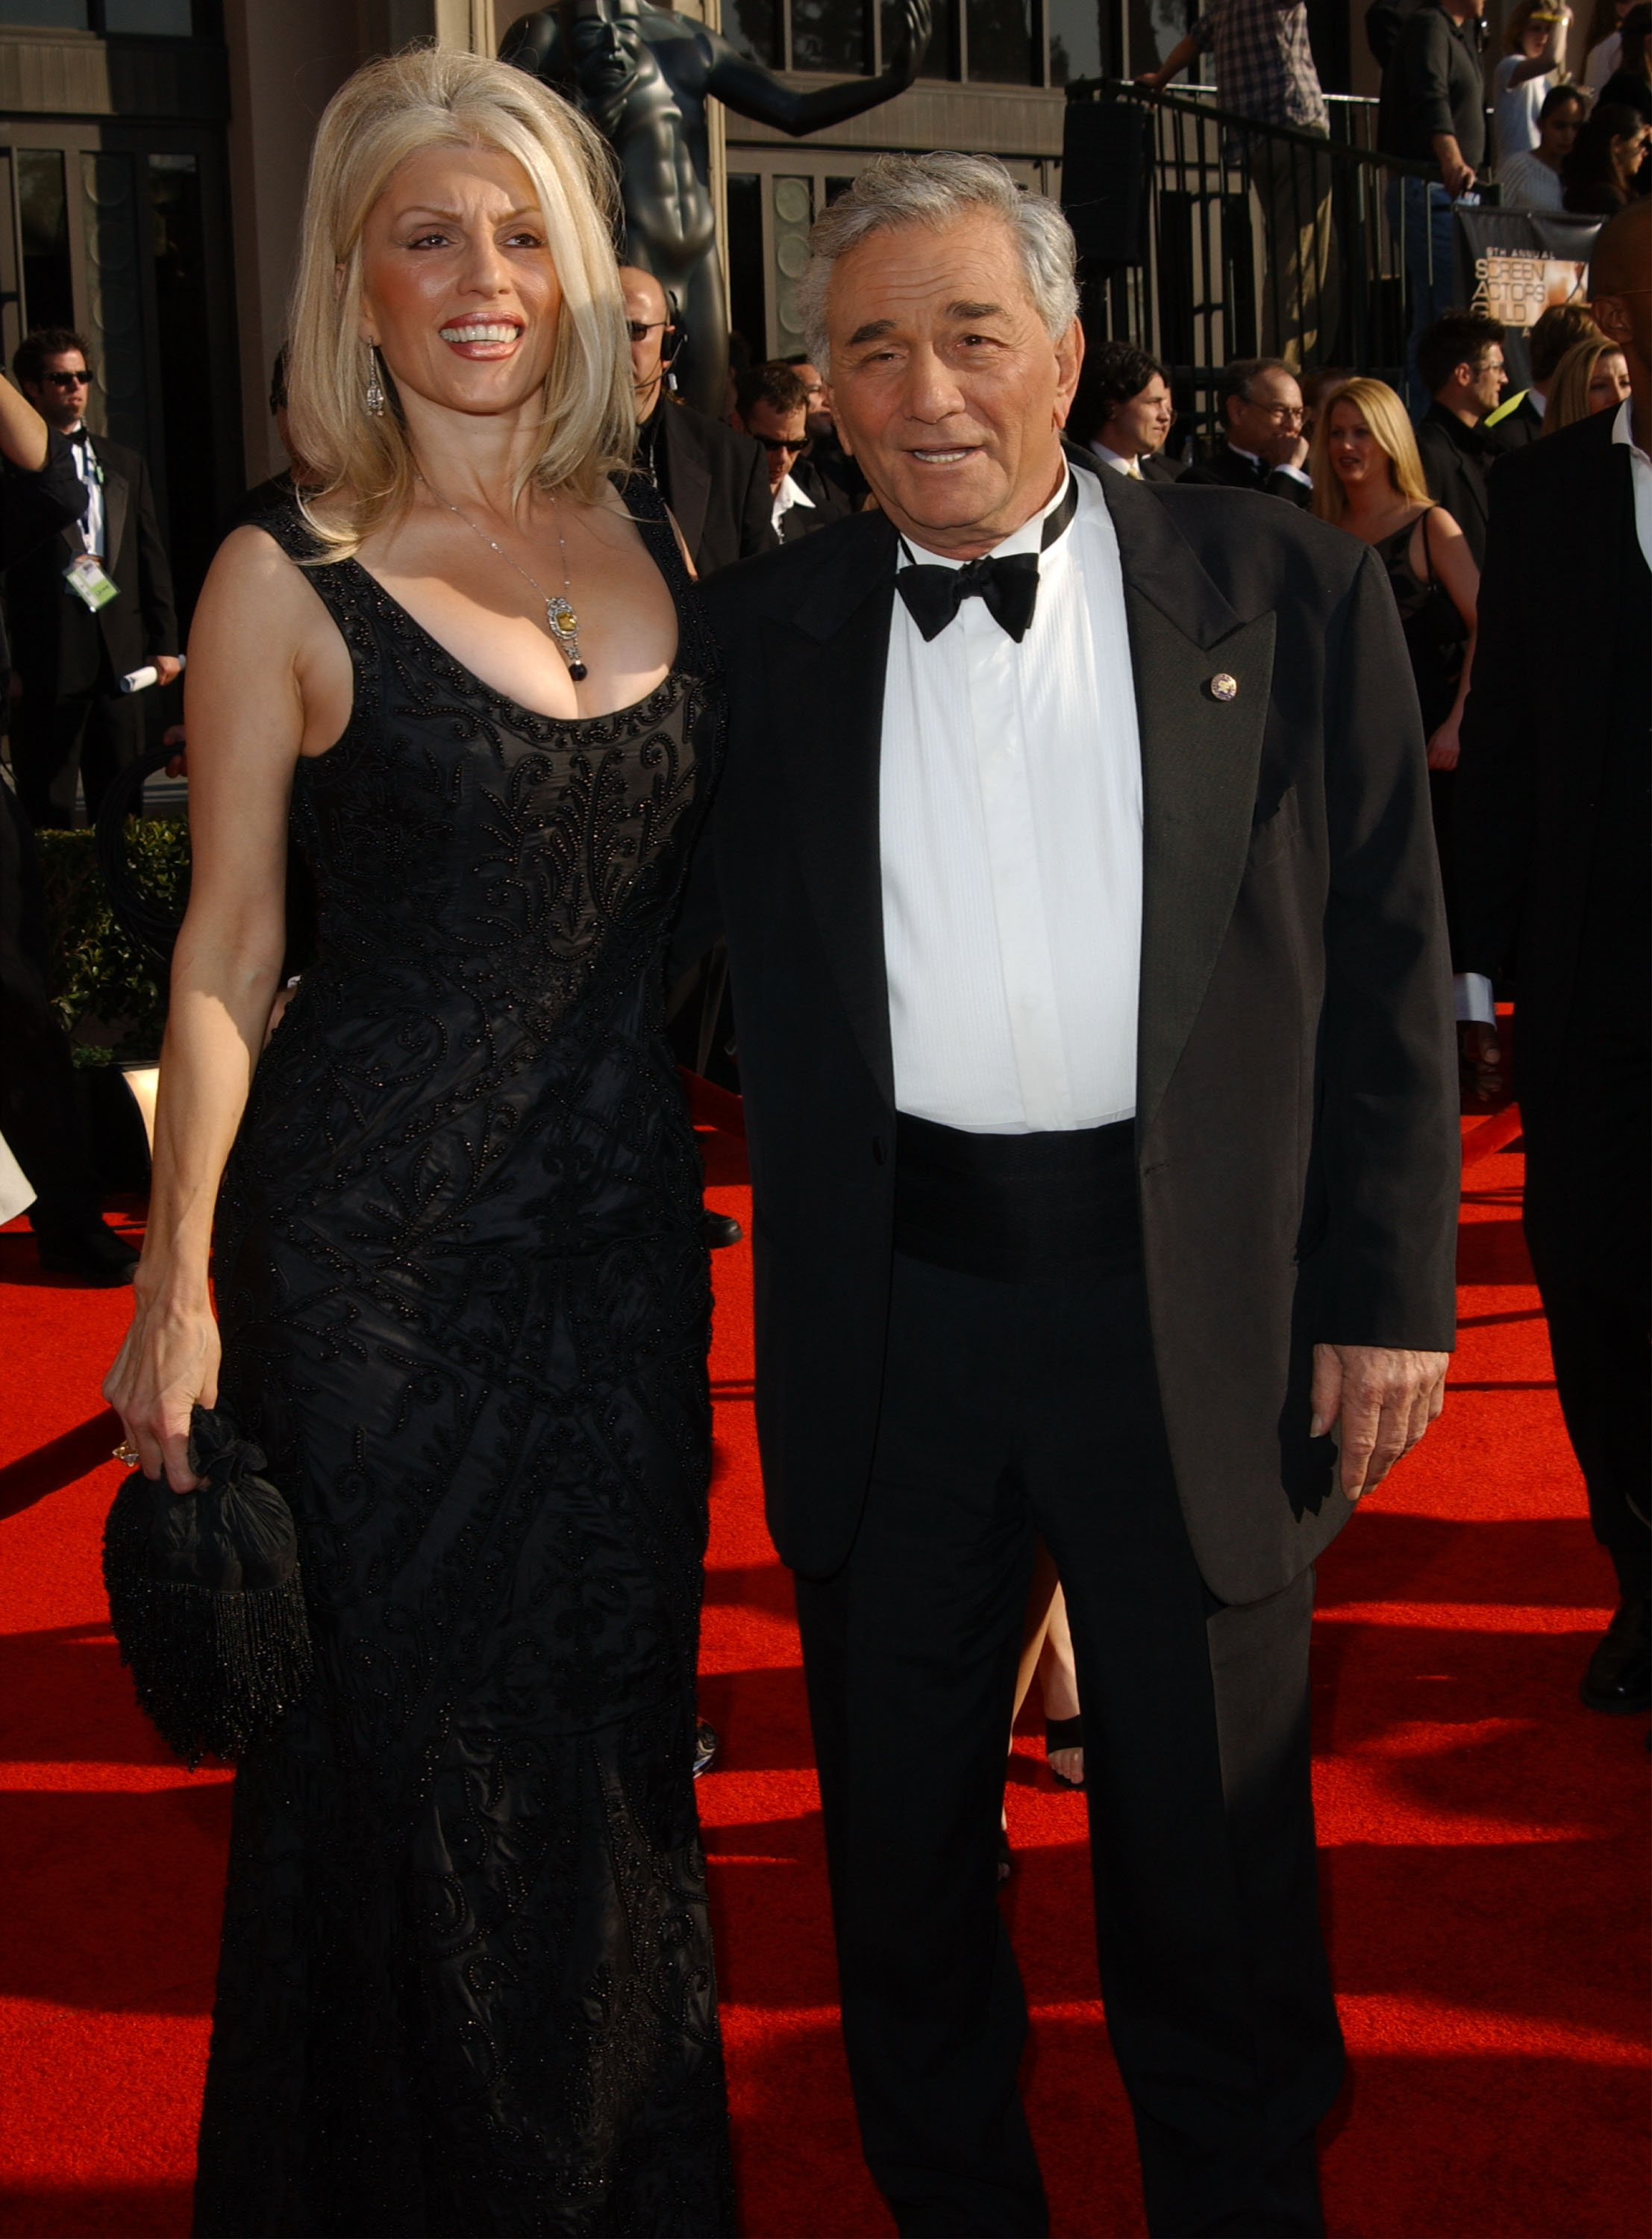 Peter Falk and Shera Danese at the 9th Annual Screen Actors Guild Awards on March 9, 2003 | Photo: GettyImages